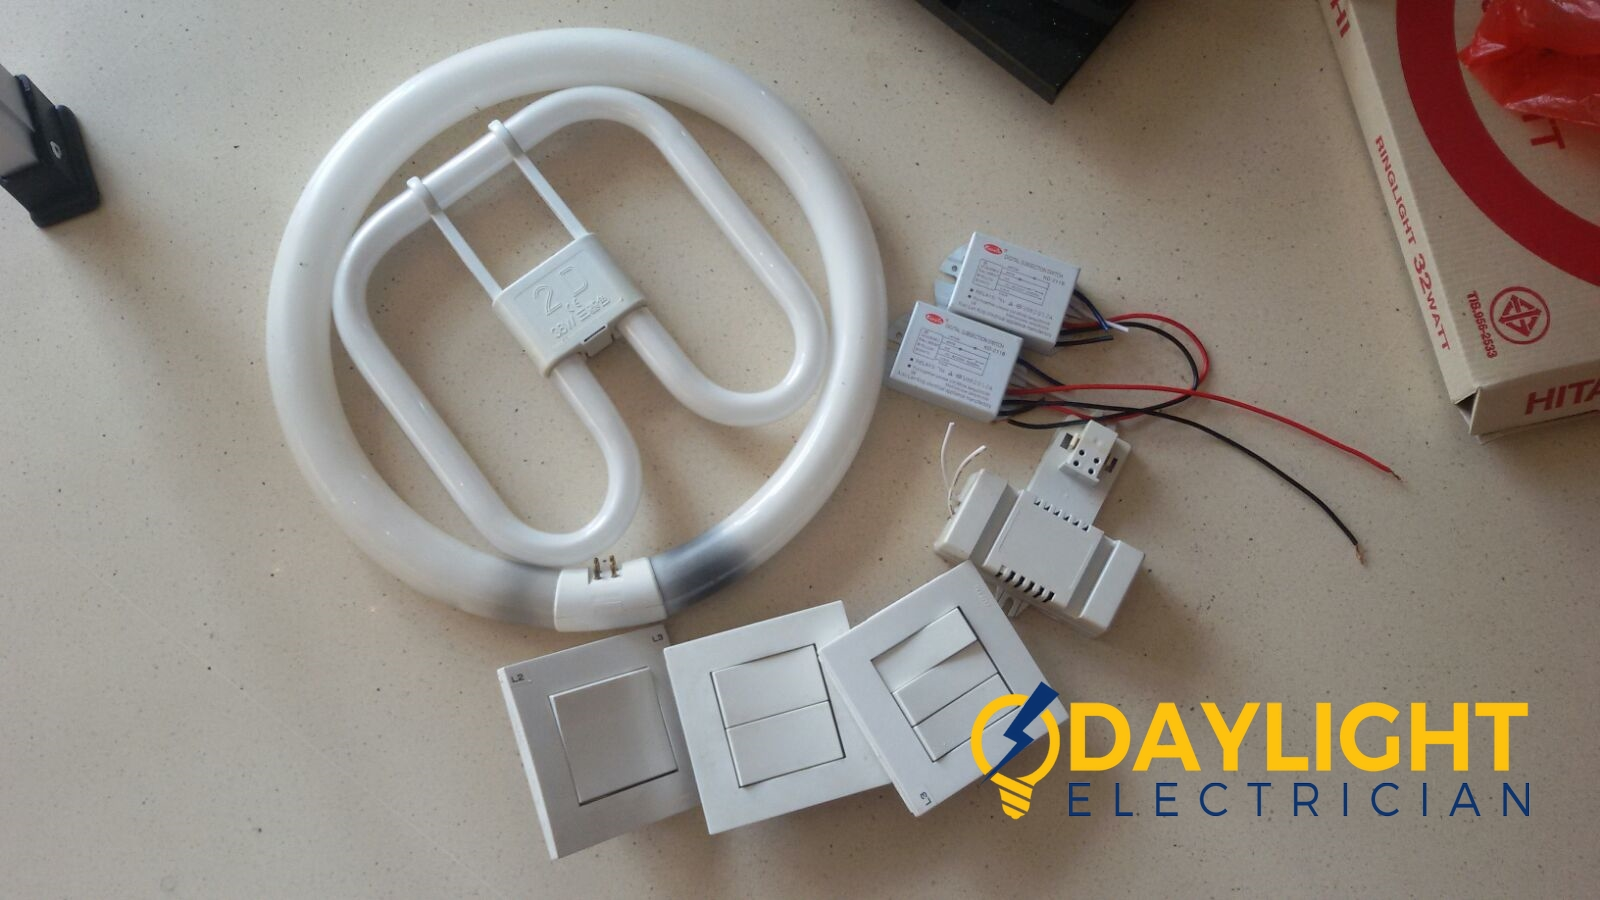 Change-light-switches-light-bulbs-electrician-singapore-landed-cashew-road-11